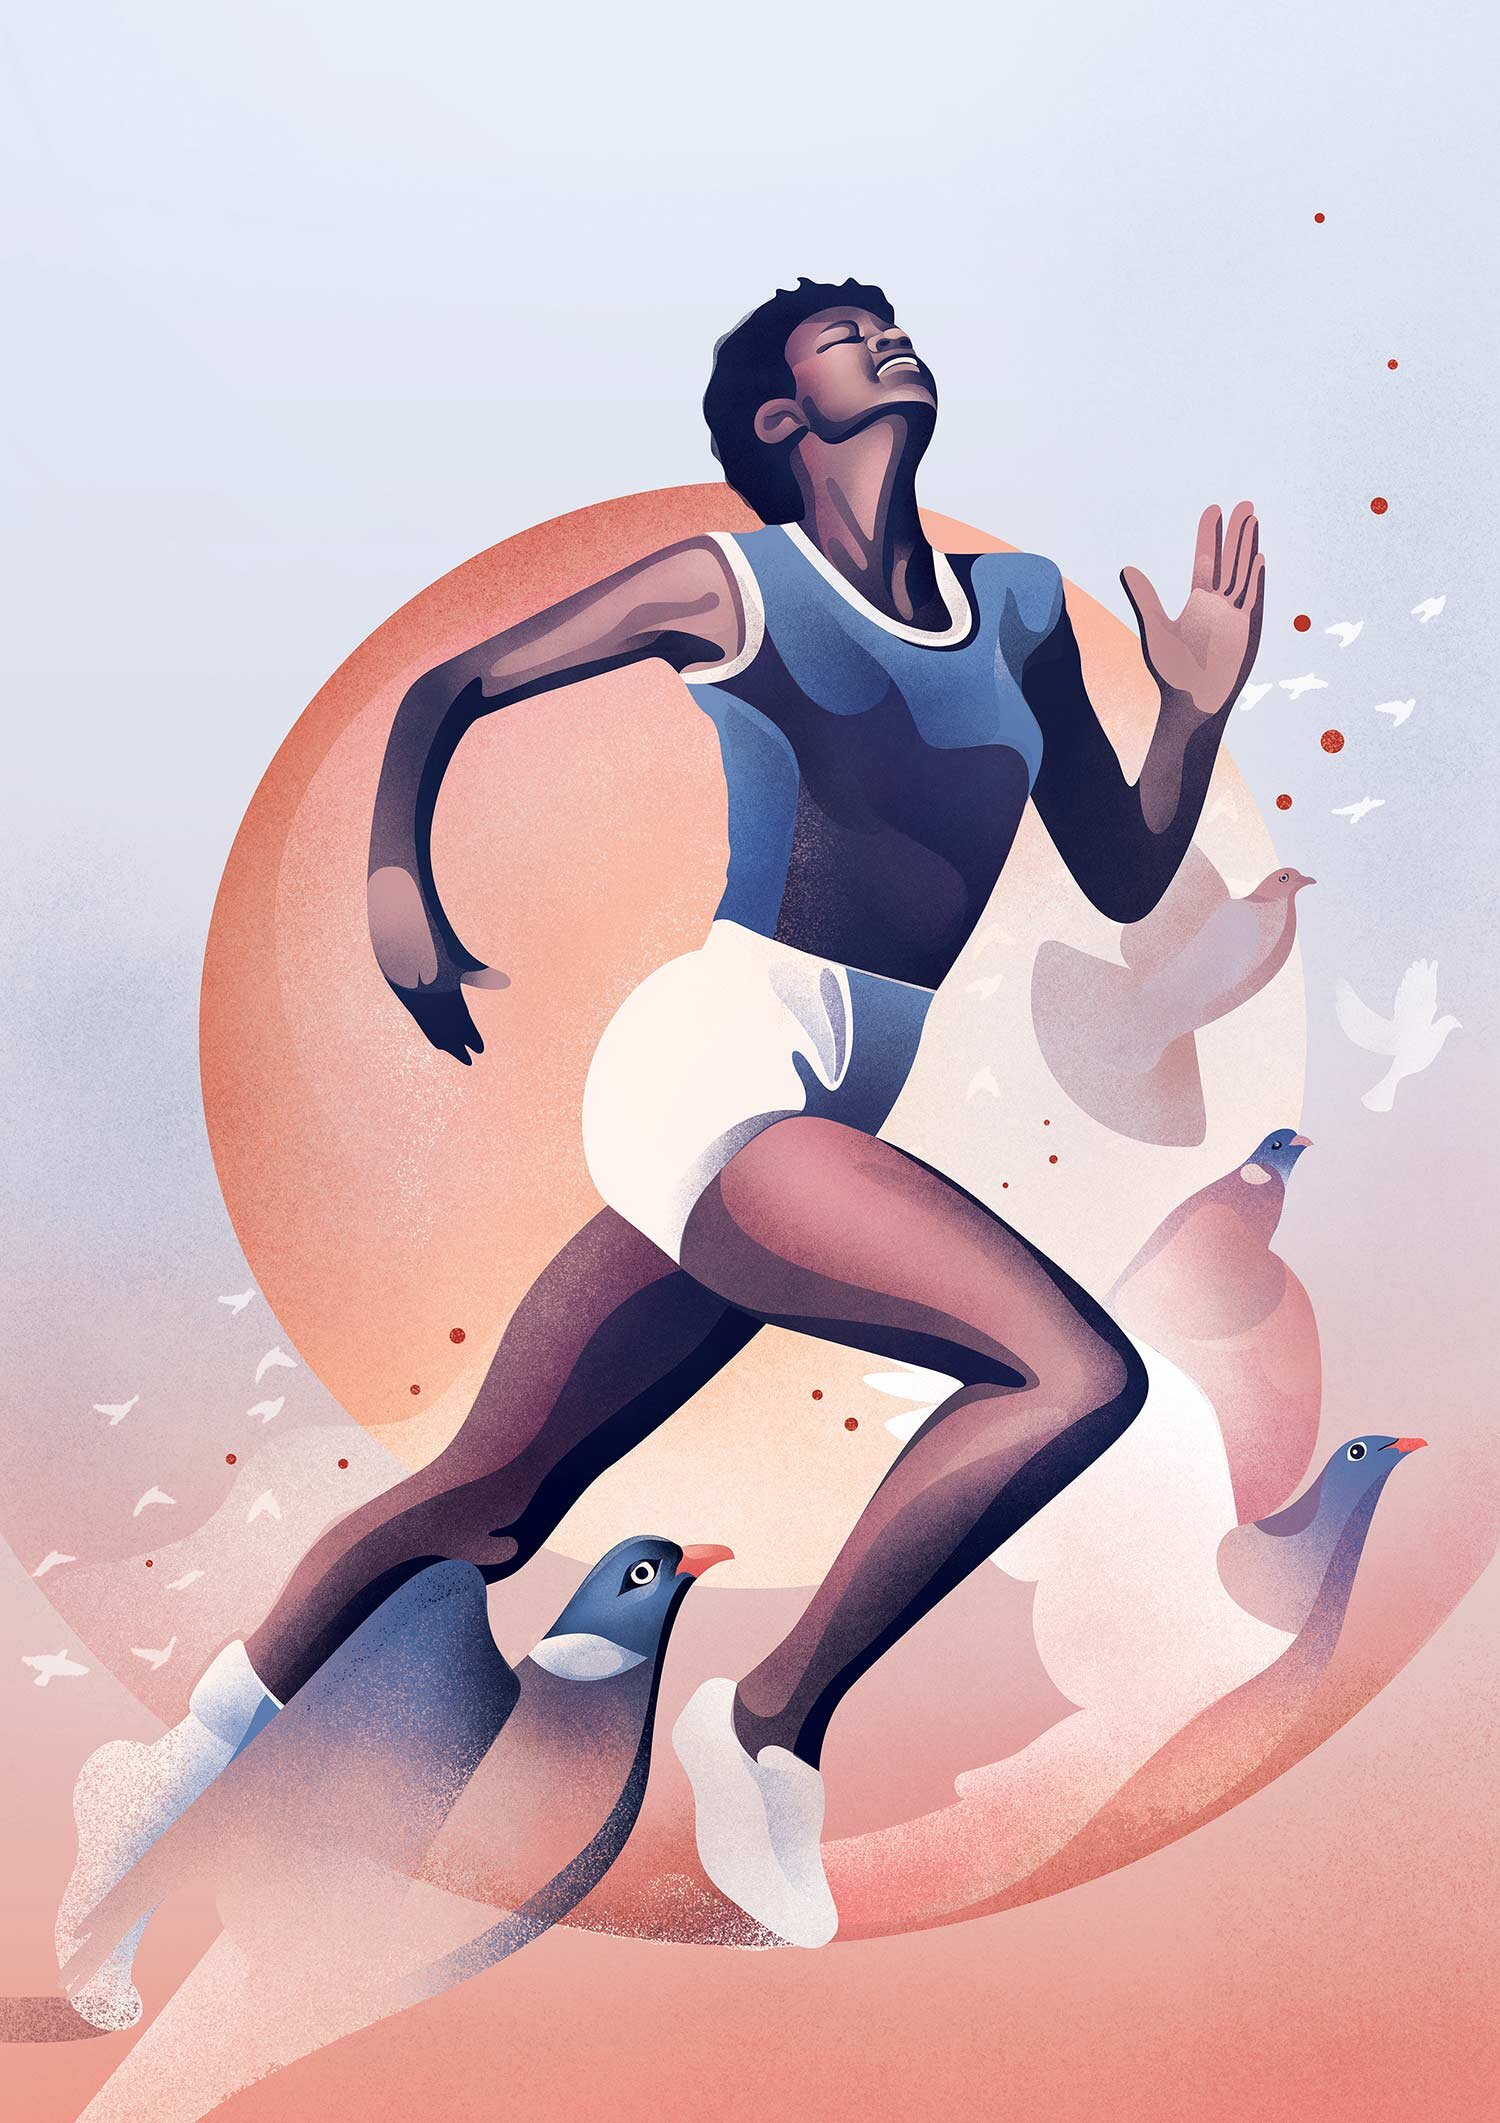 Day 3 Prompt: Equality (Wilma Rudolph)